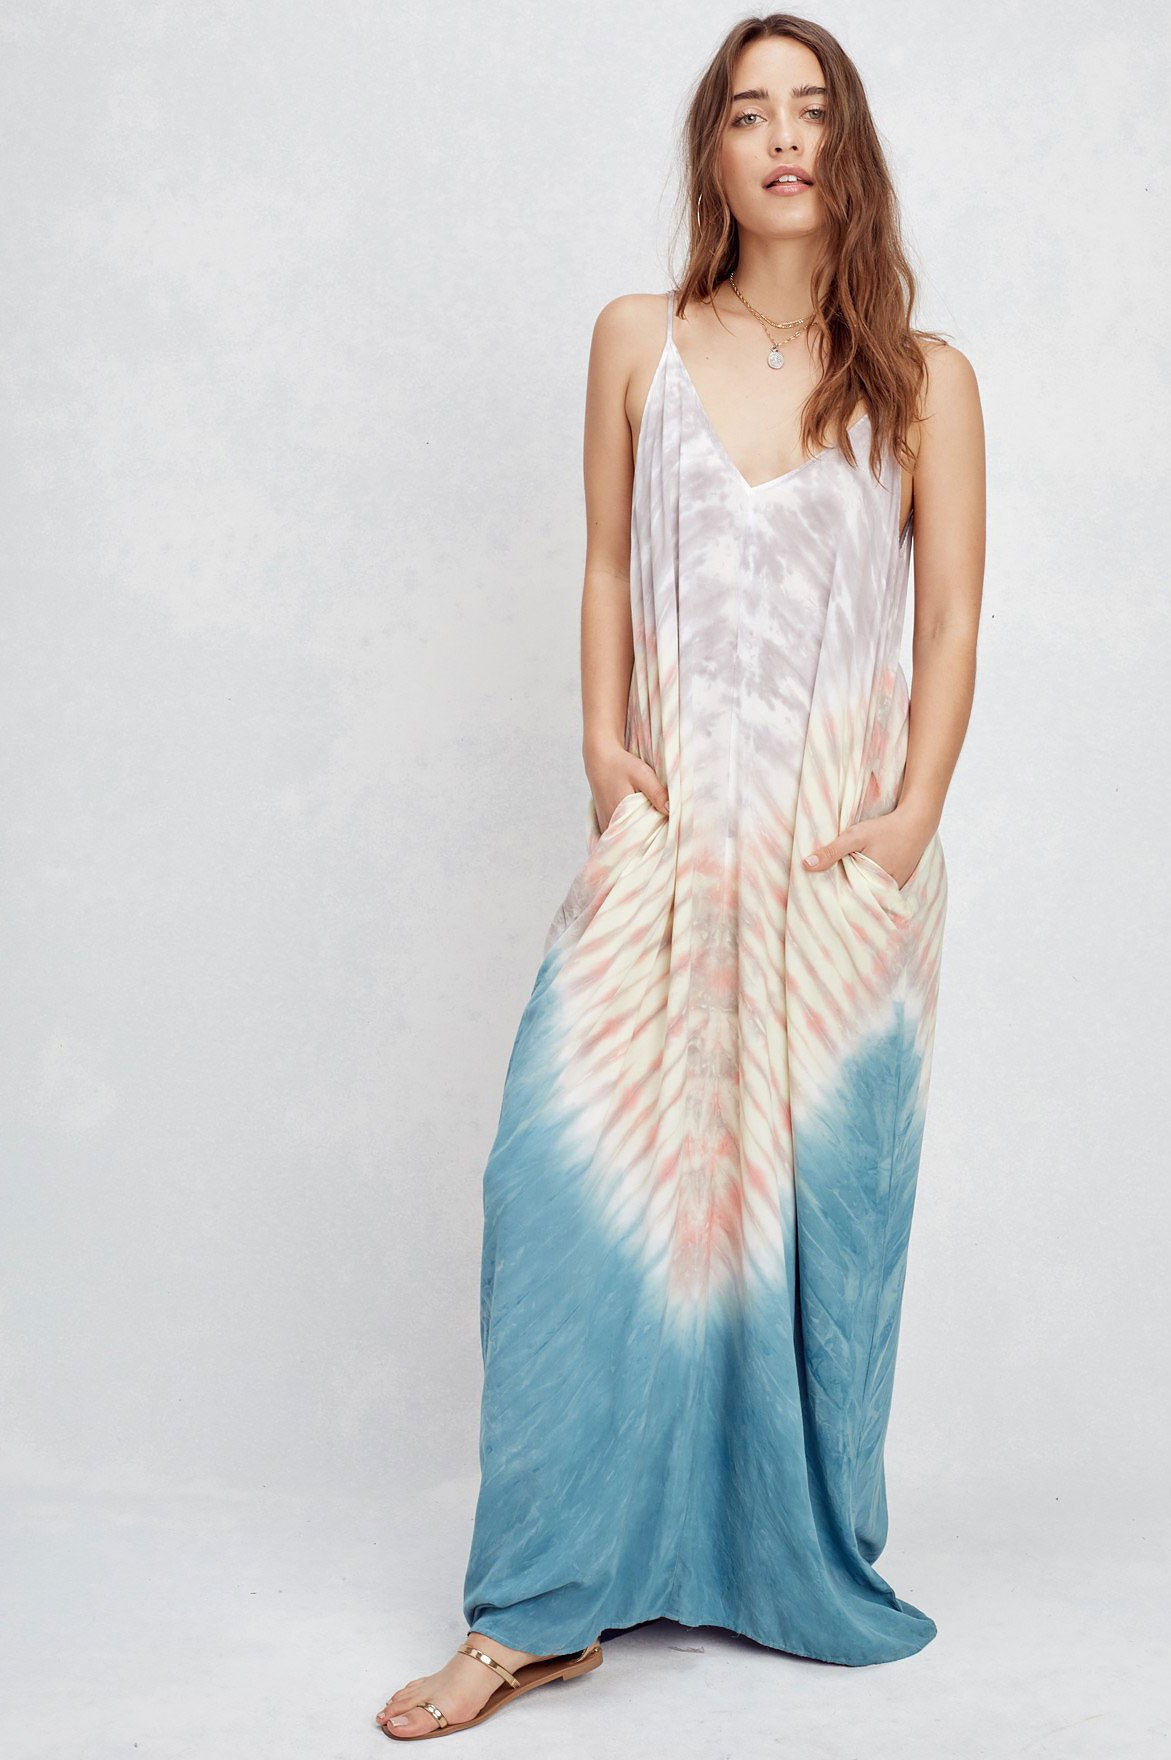 Women's sleeveless v-neck blue tie dye long maxi dress casual sundress